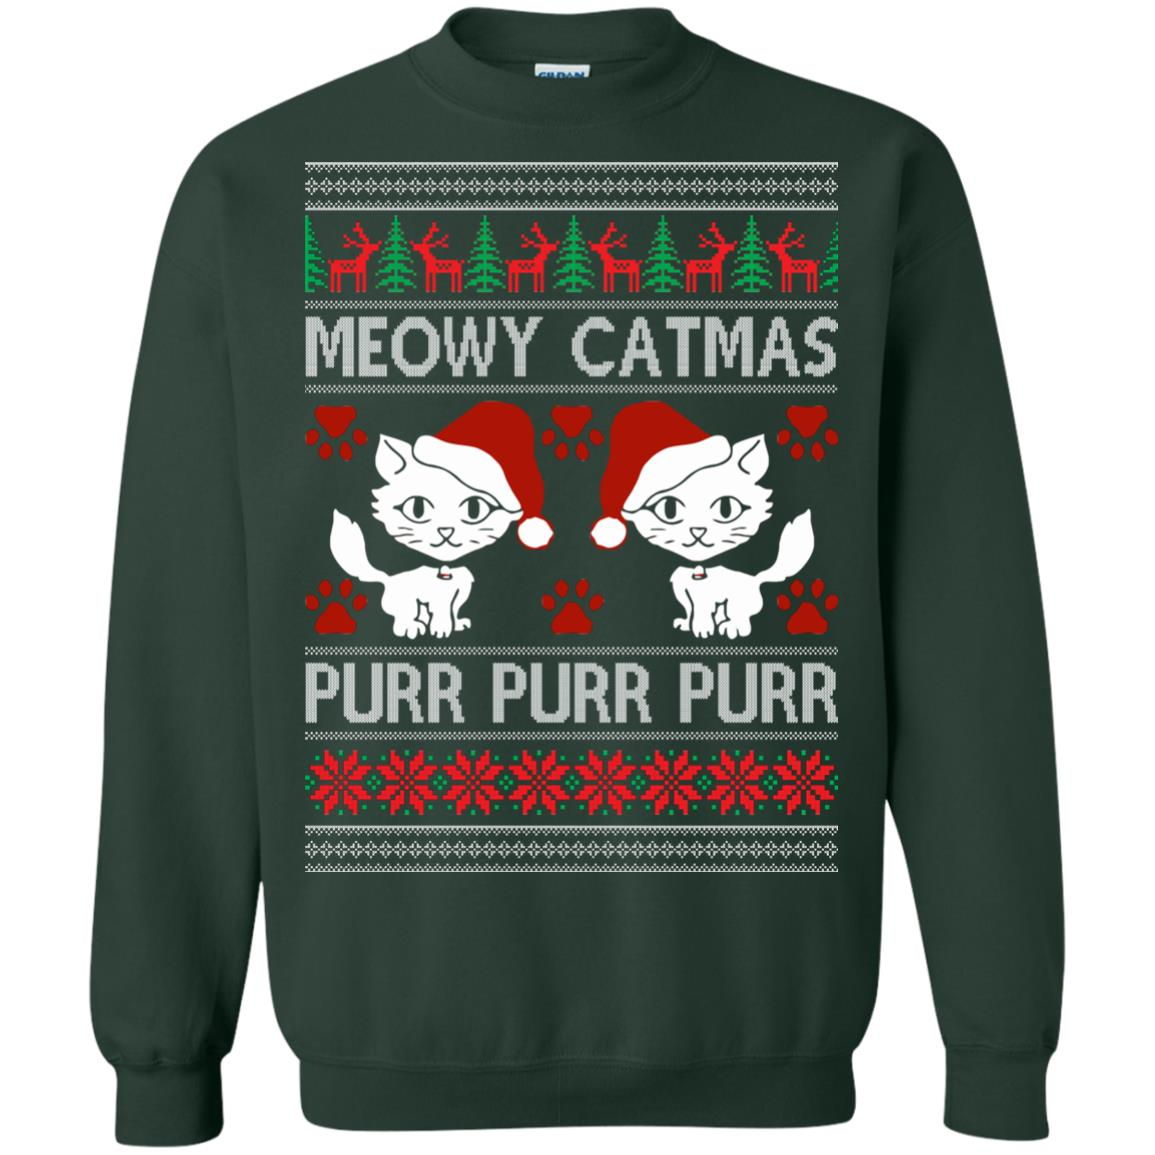 image 1168px Meowy Catmas Purr Purr Christmas Sweater, Cat Lover Sweatshirt